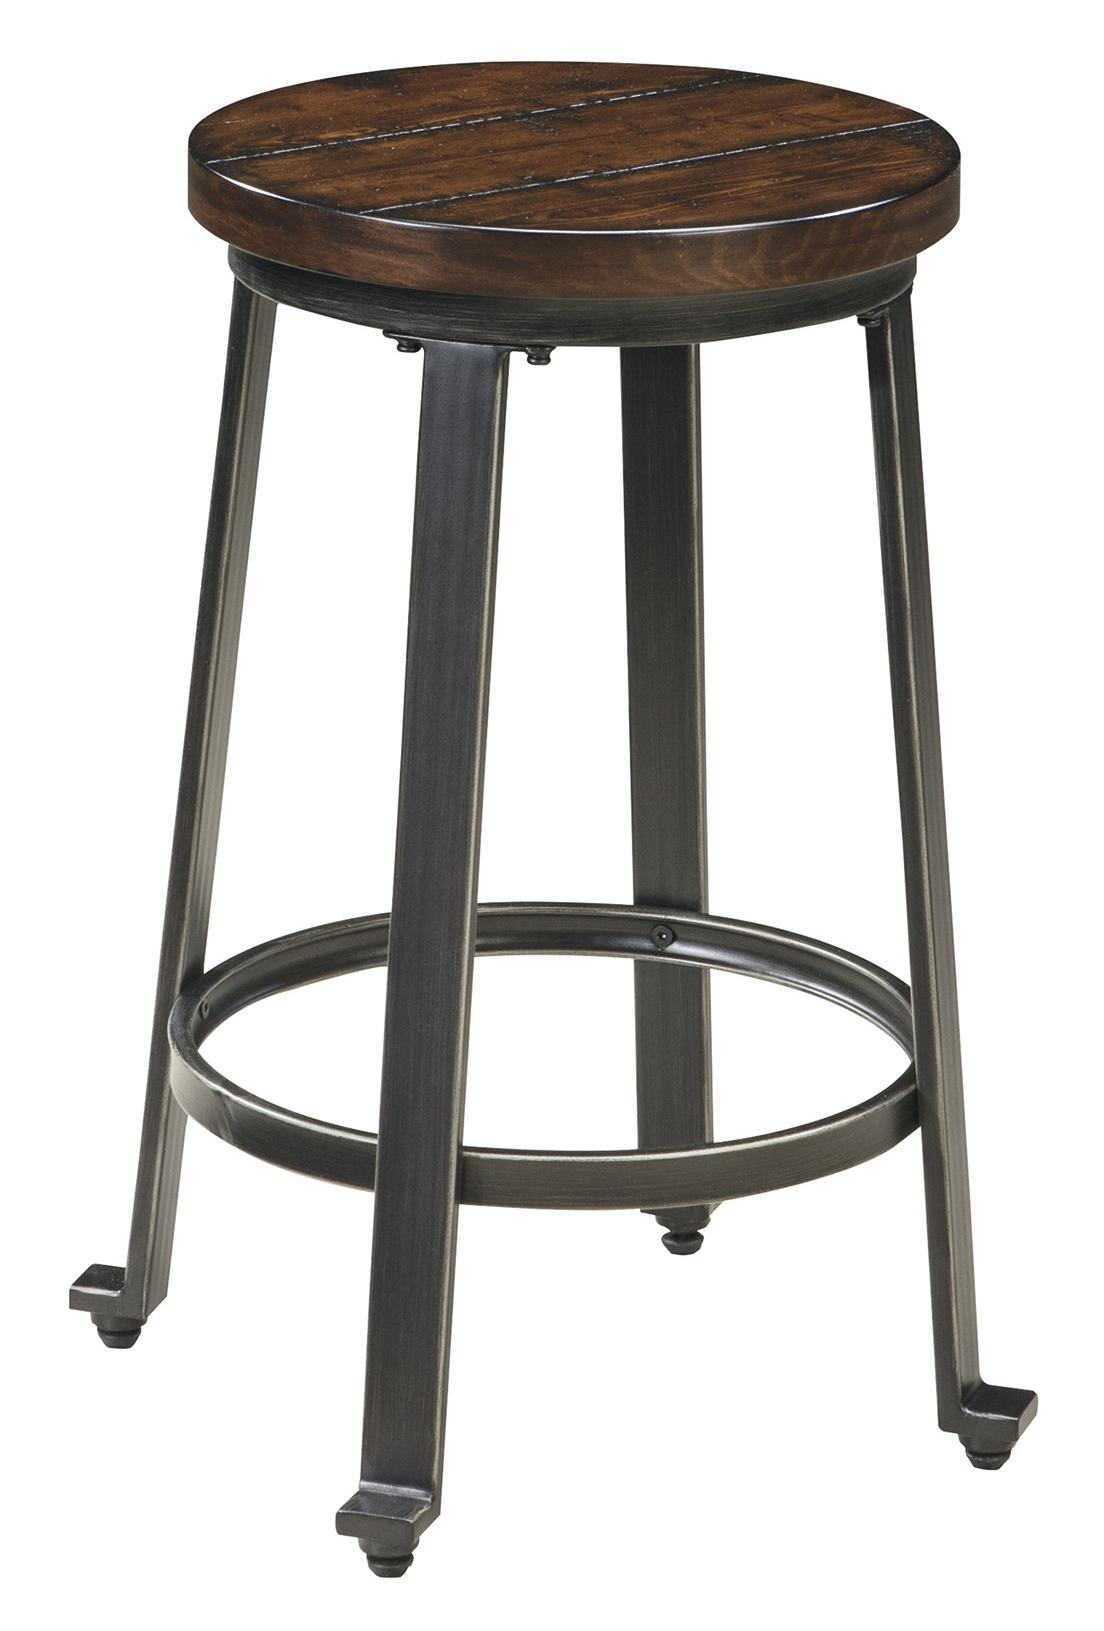 Signature Design by Ashley Challiman Stool - Item Number: D307-124